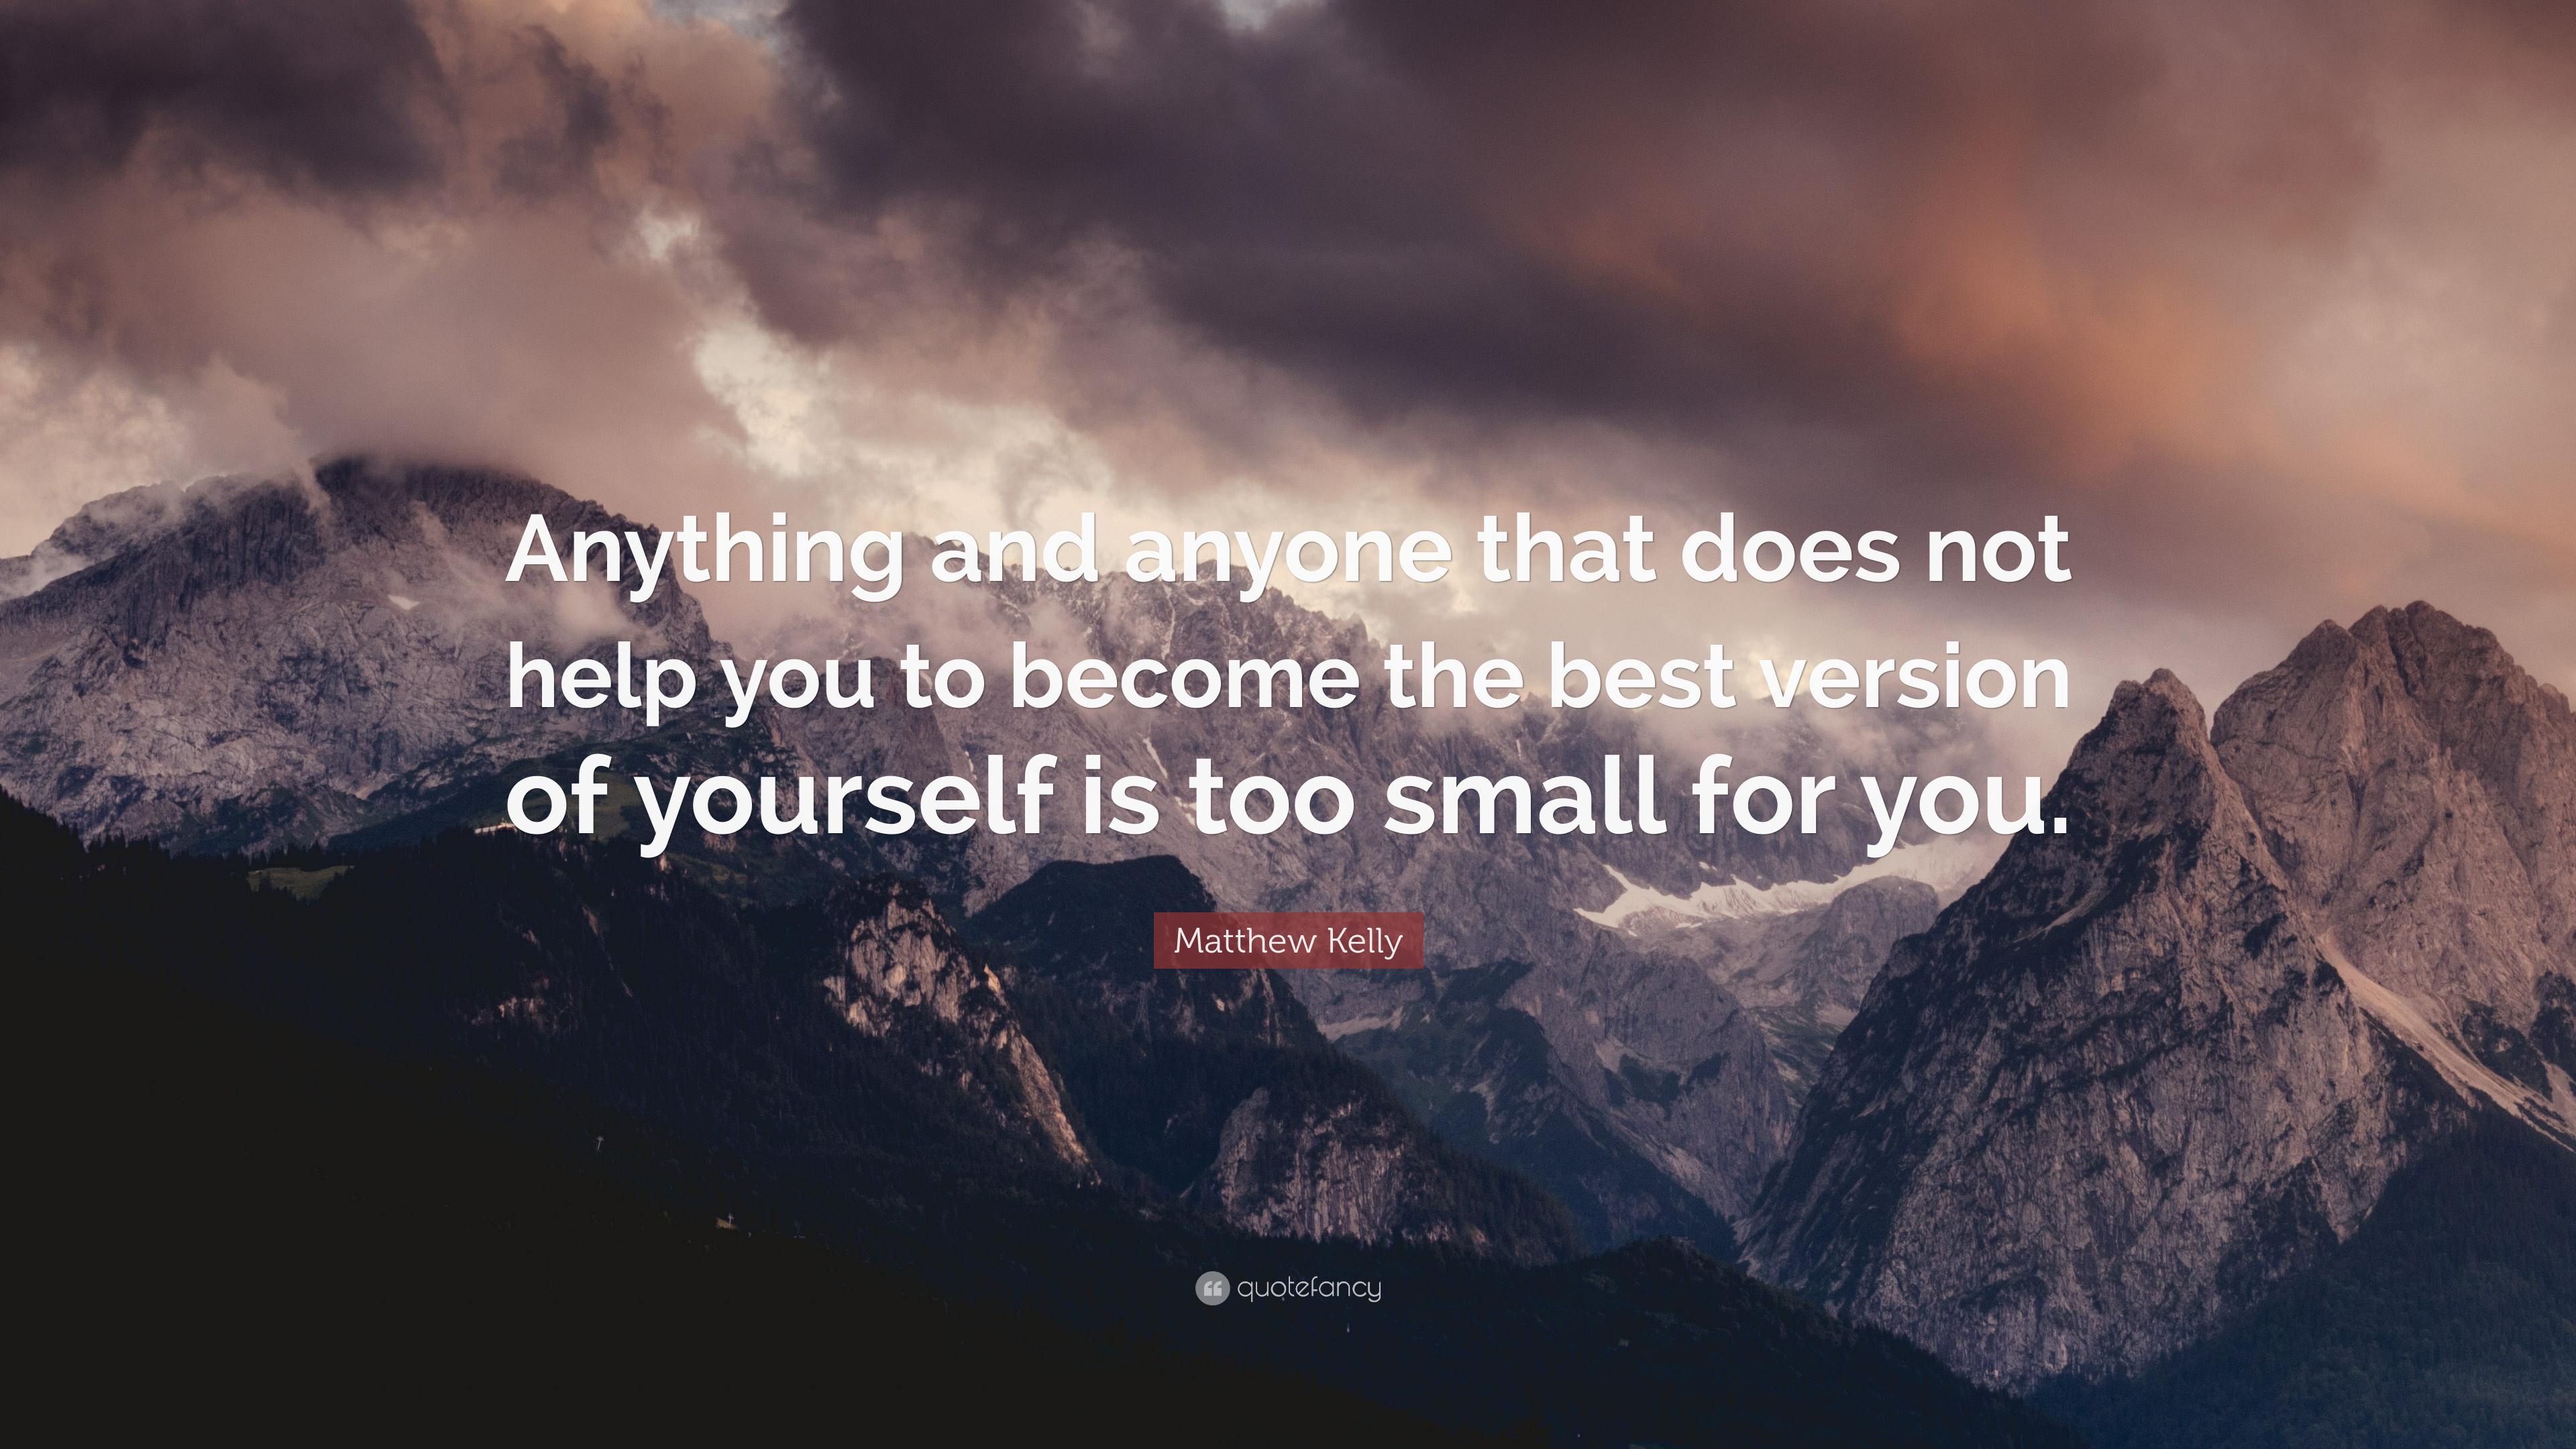 Matthew Kelly Quote Anything And Anyone That Does Not Help You To